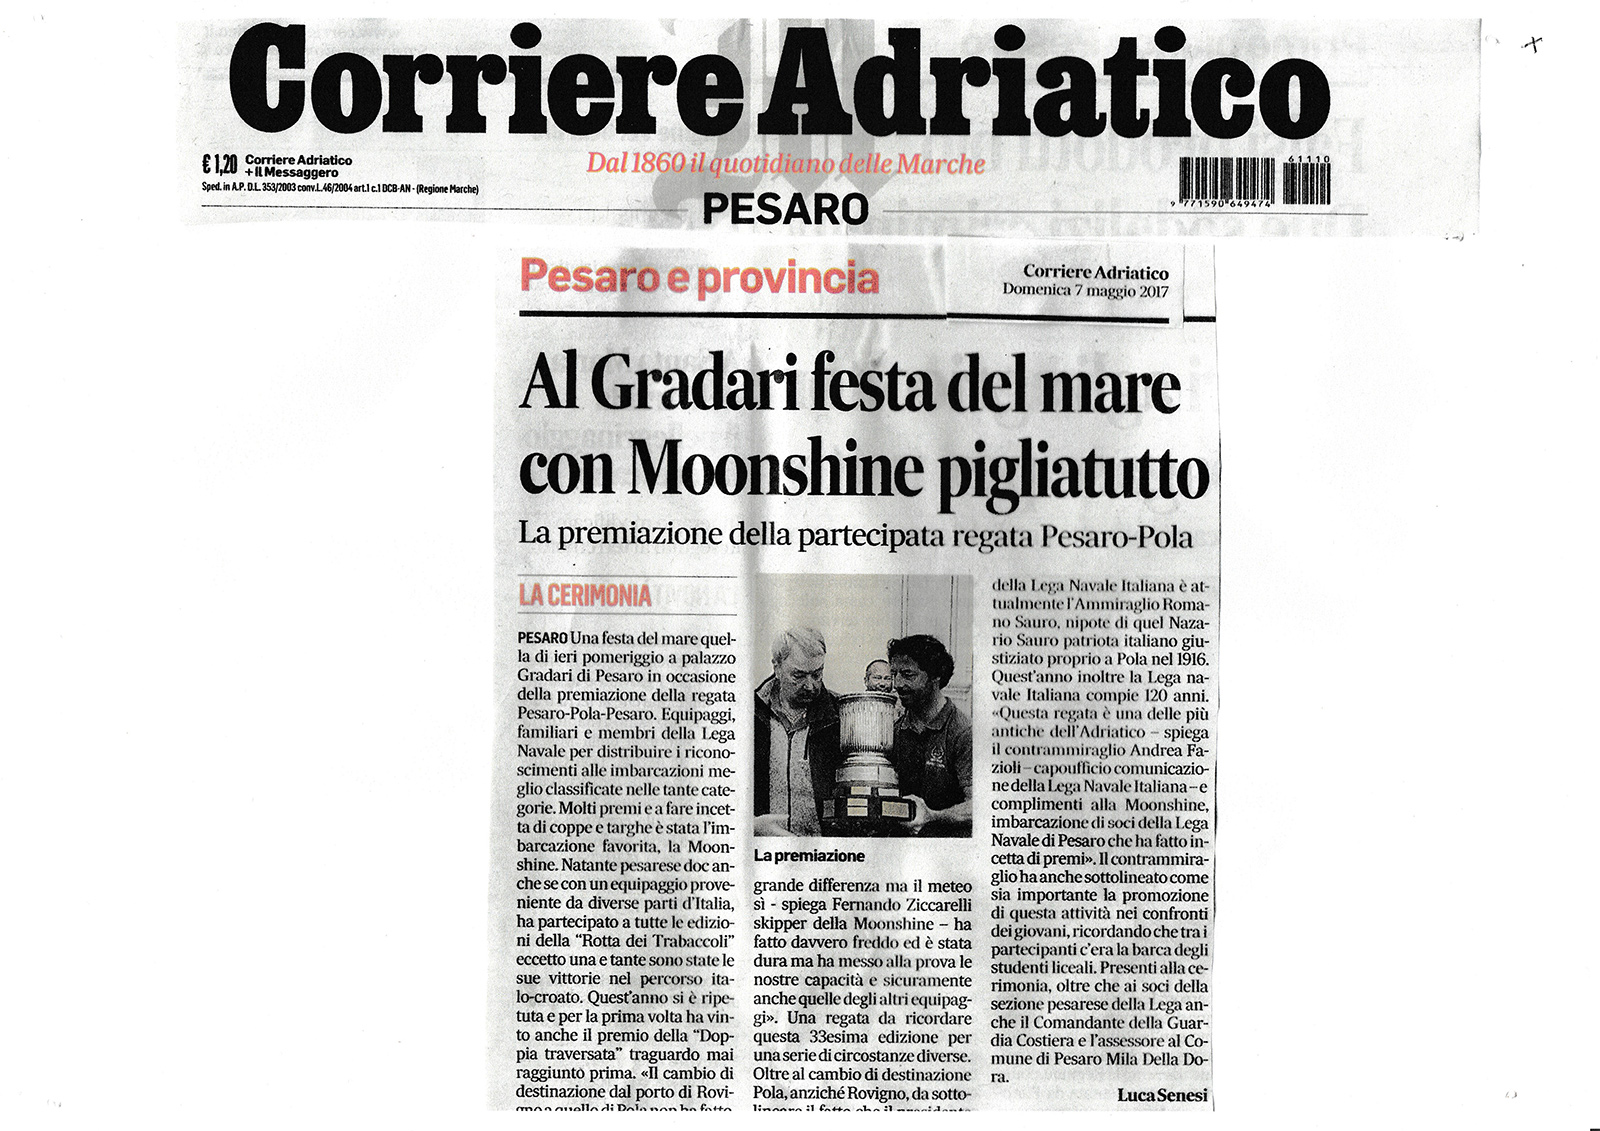 giornale5 20170530 0001